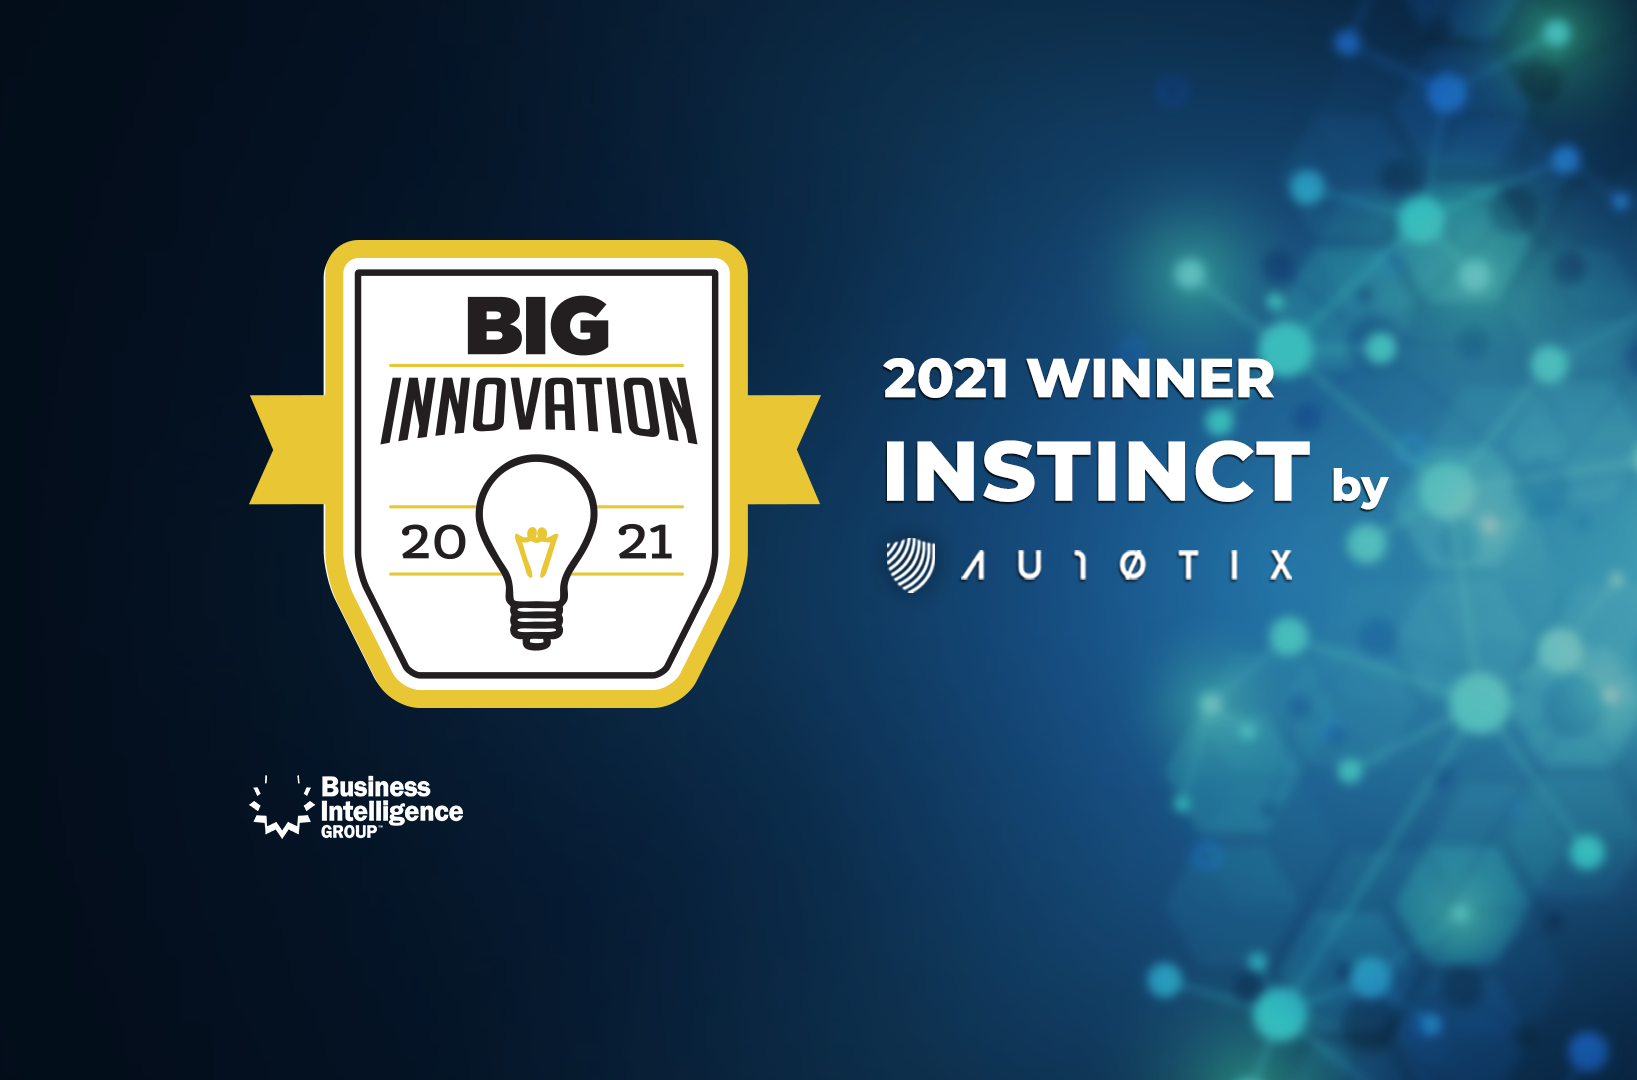 INSTINCT by AU10TIX Wins in the 2021 BIG Business Innovation Awards